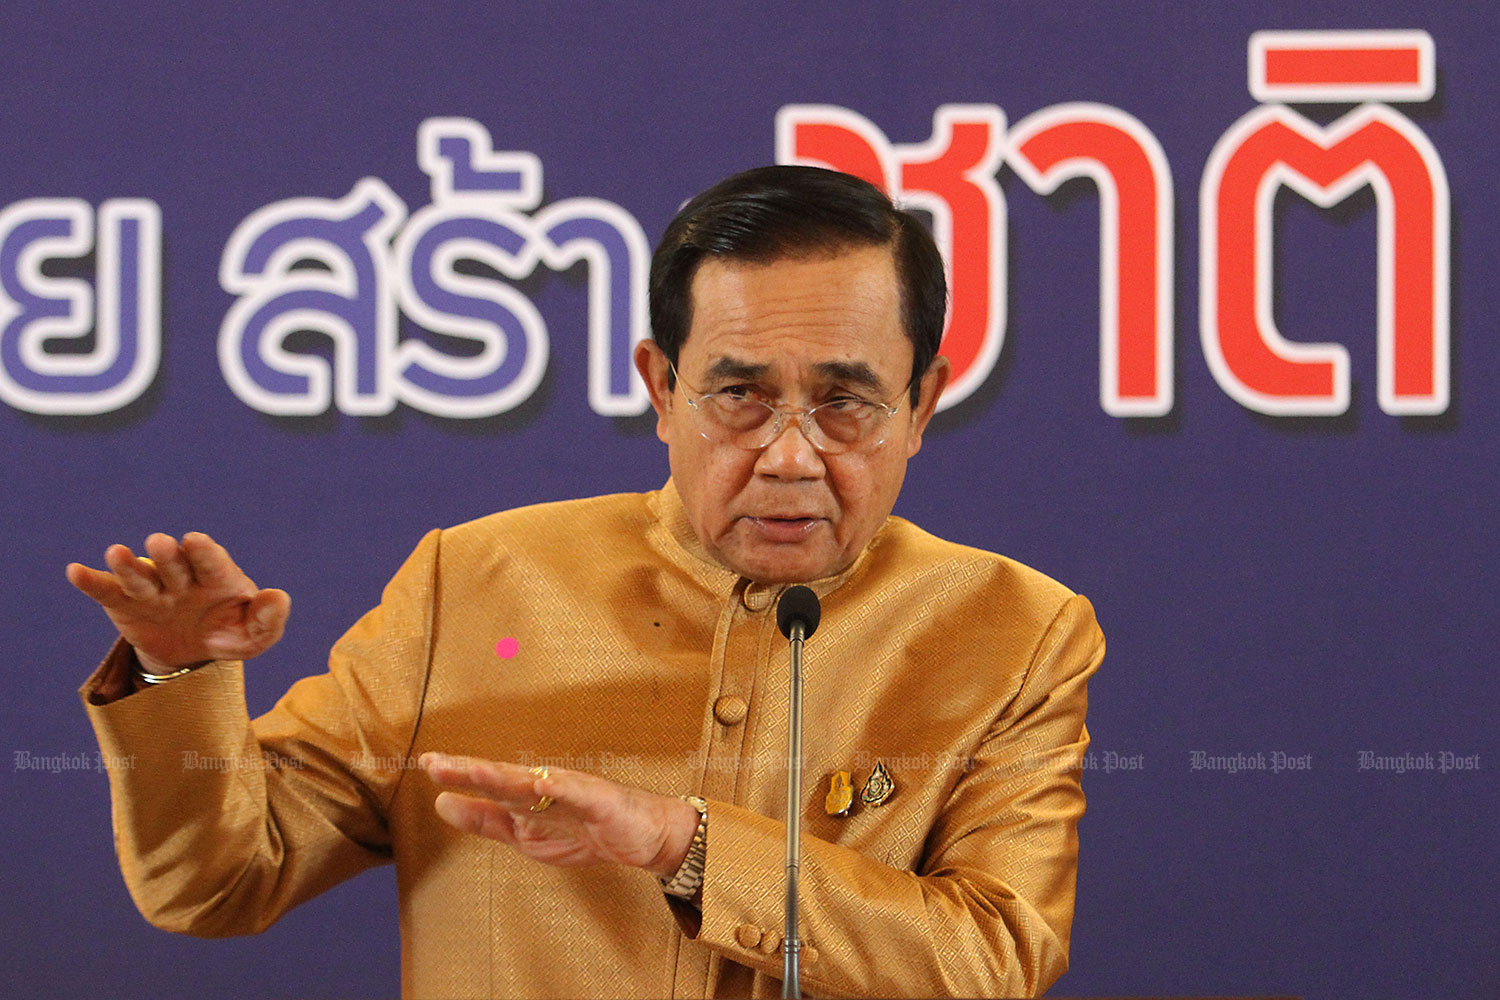 Prime Minister Prayut Chan-o-cha on Tuesday explains the high price of constitutional amendment during a pandemic. (Photo by Wichan Charoenkiatpakul)